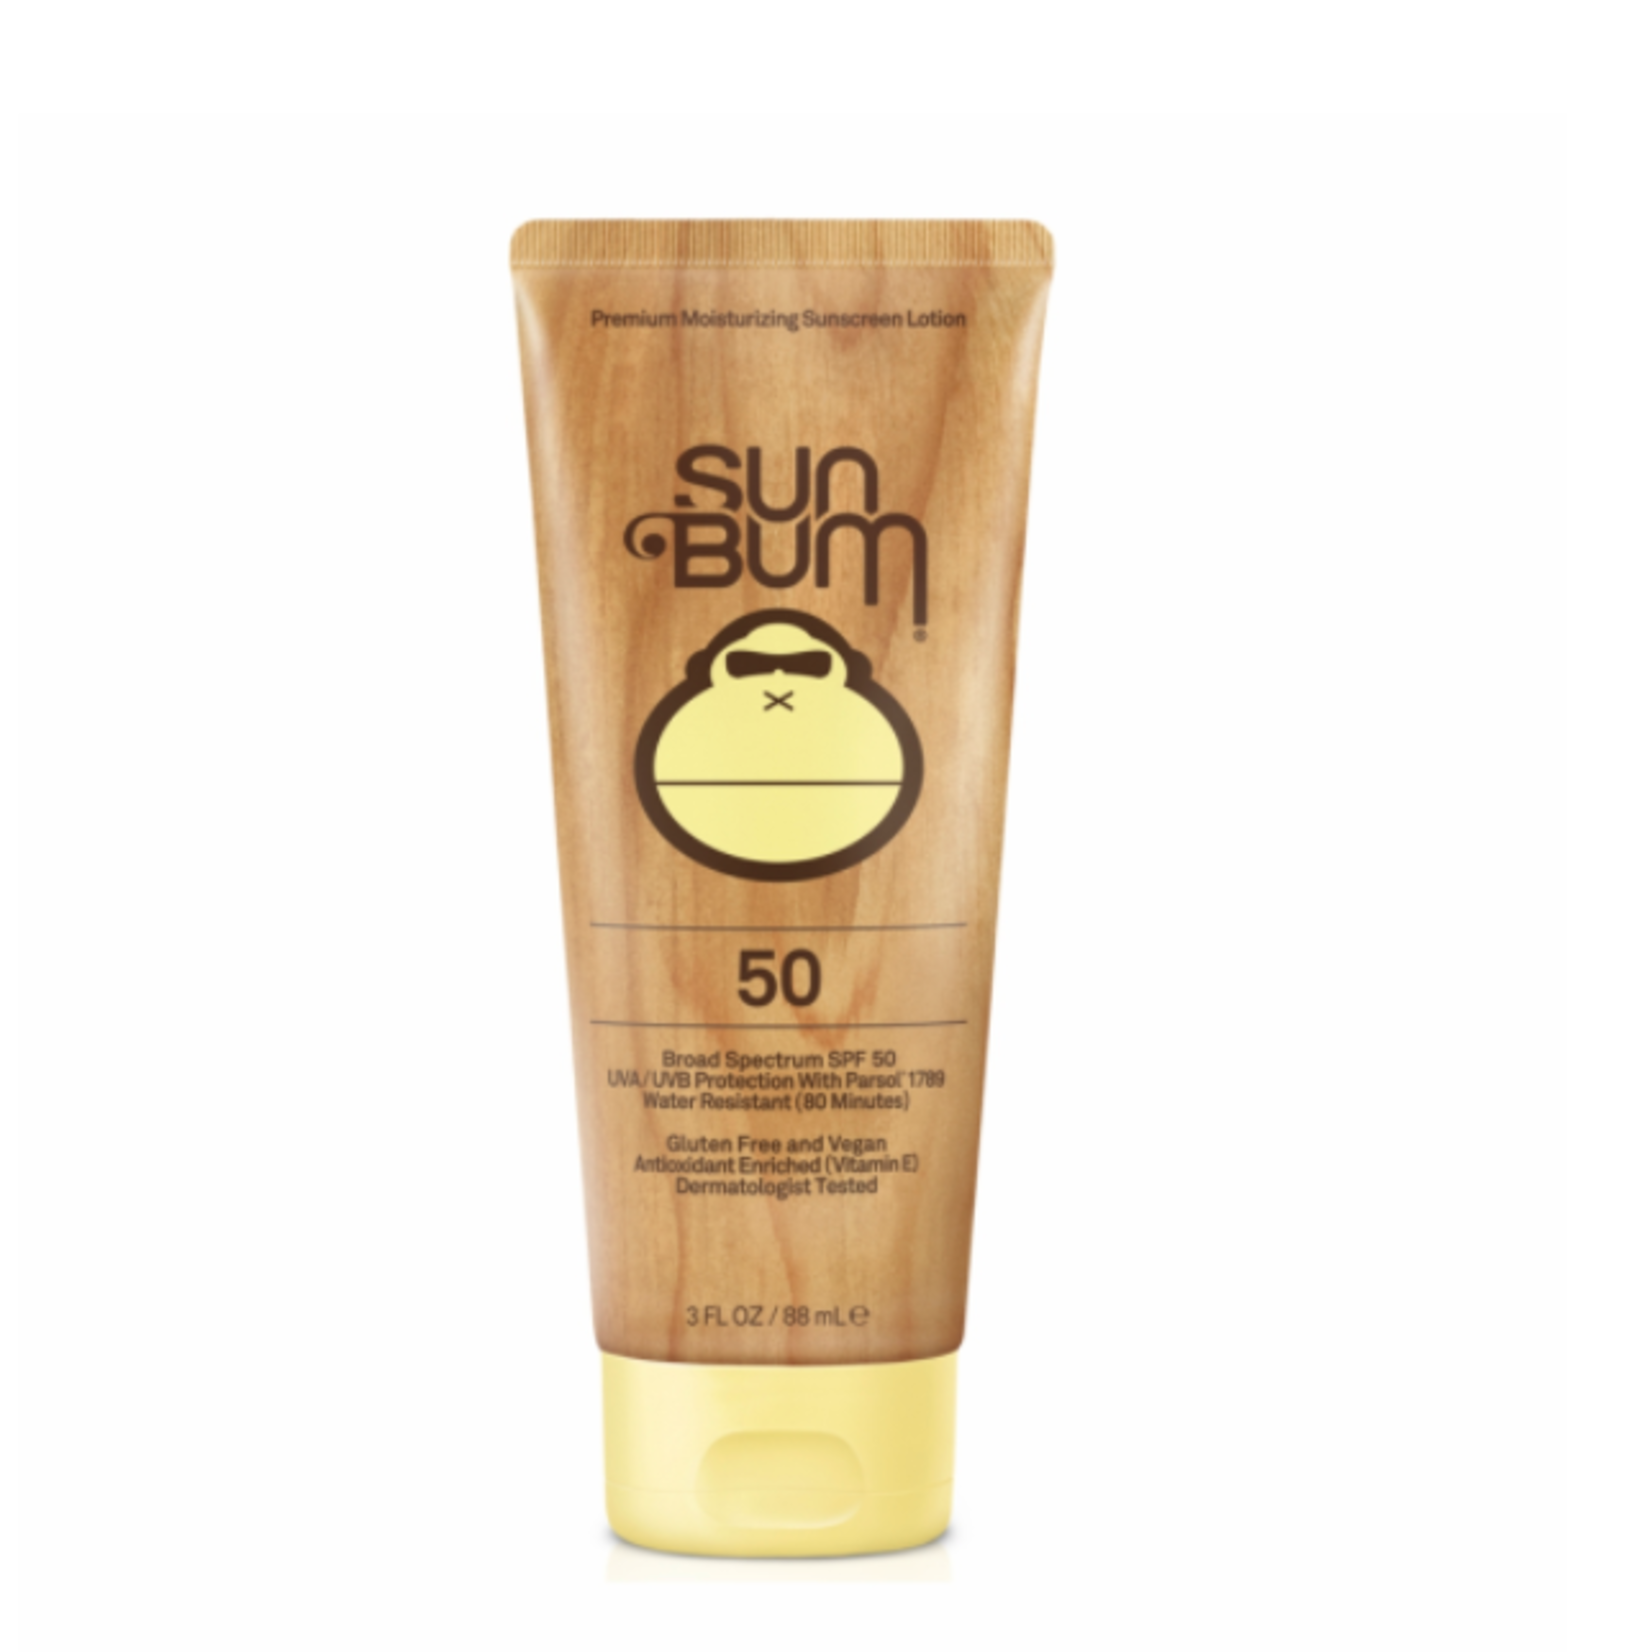 Sun Bum Sun Bum Original Sunscreen Lotion.